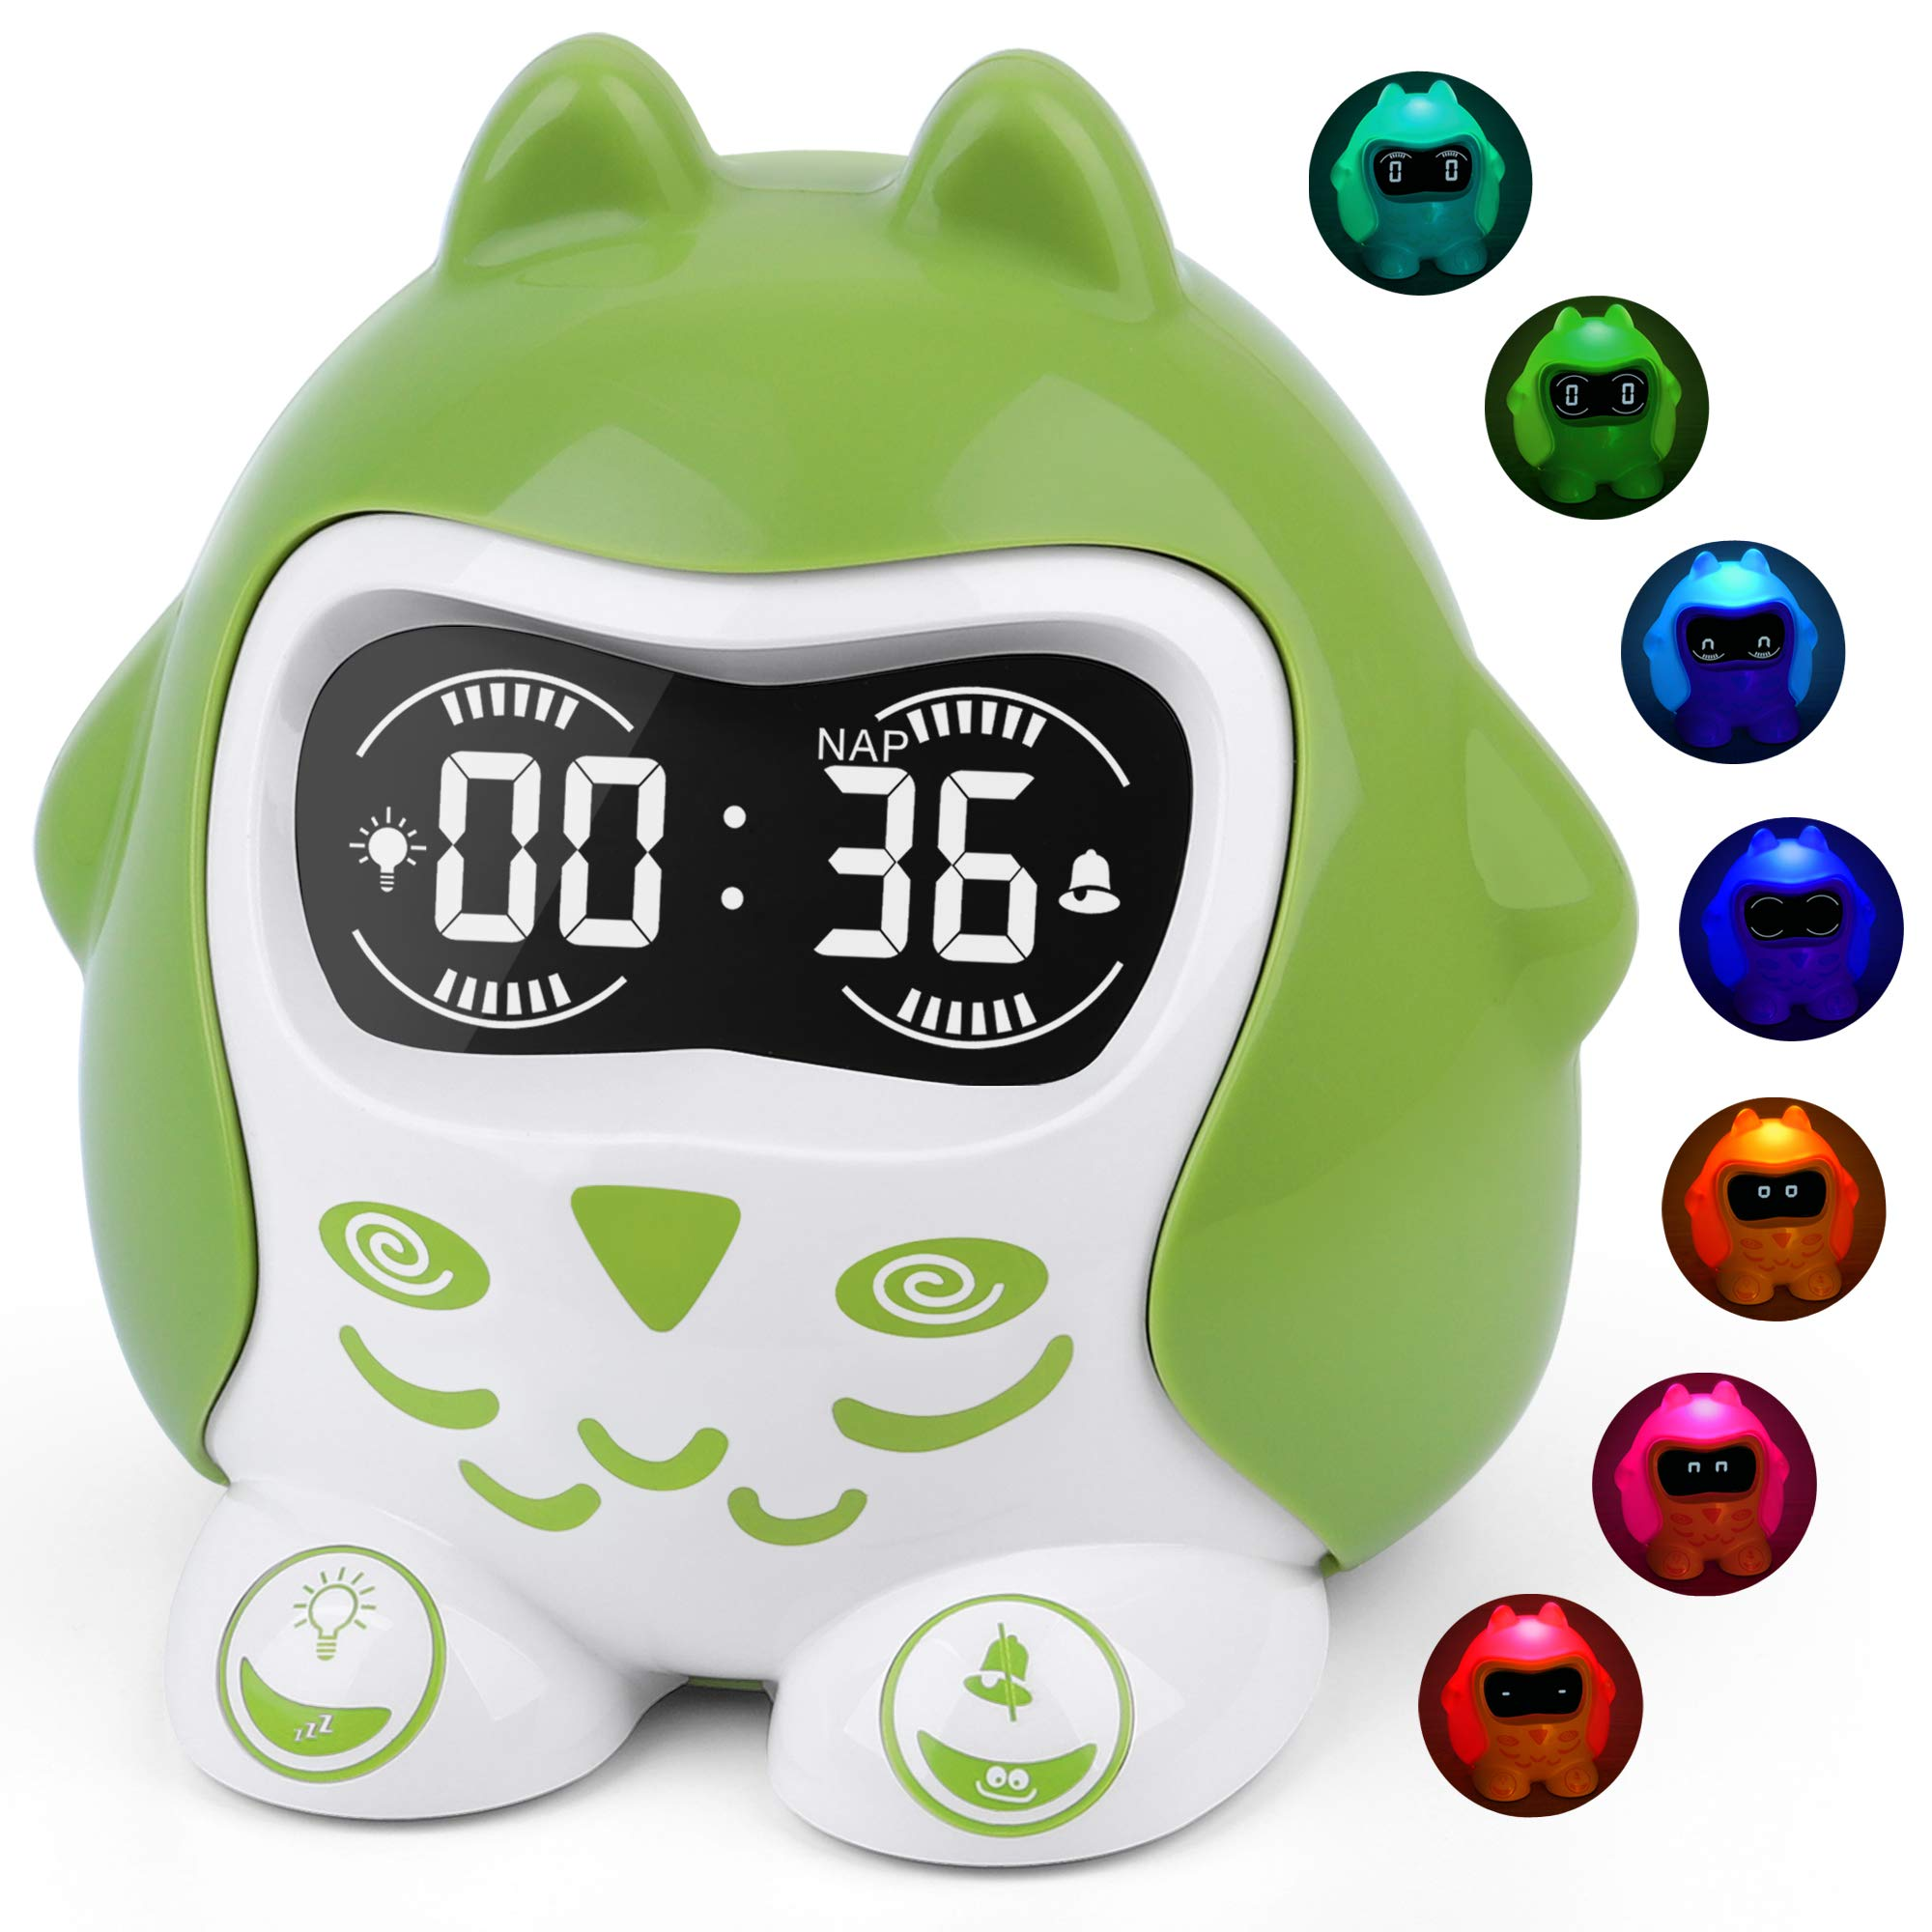 Baby White Noise Machine|Sleep Trainer Clock|Time to Wake Alarm Clock with 9 Soothing Sounds & Lullabies for Sleeping, Night Light, 12/24 H, Dimmer, Nap, Timer for Kids, Toddler & Children Bedroom by PPLEE